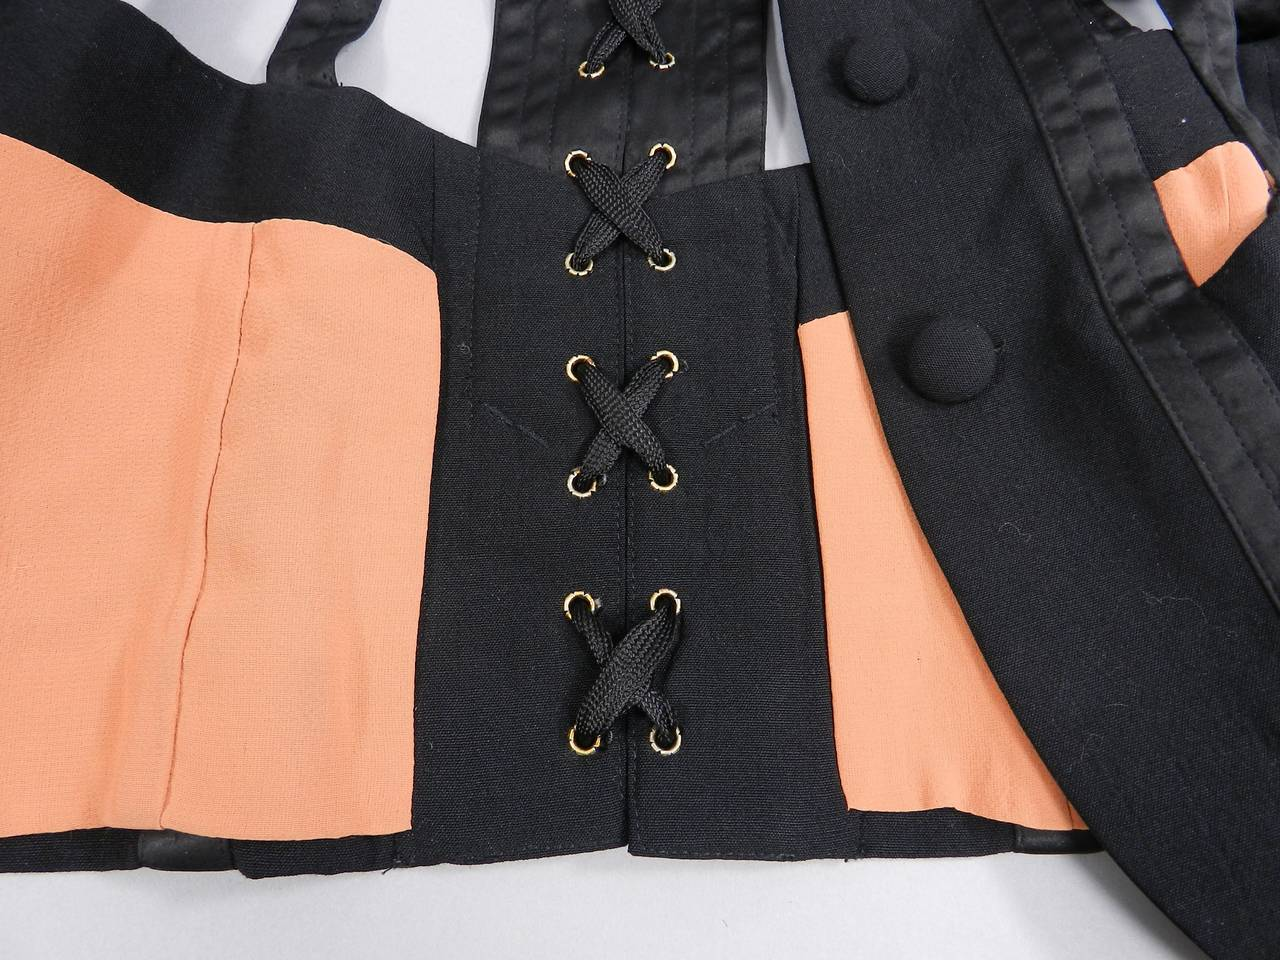 Jean Paul Gaultier Iconic 1989 Black Corset Cage Jacket For Sale 4